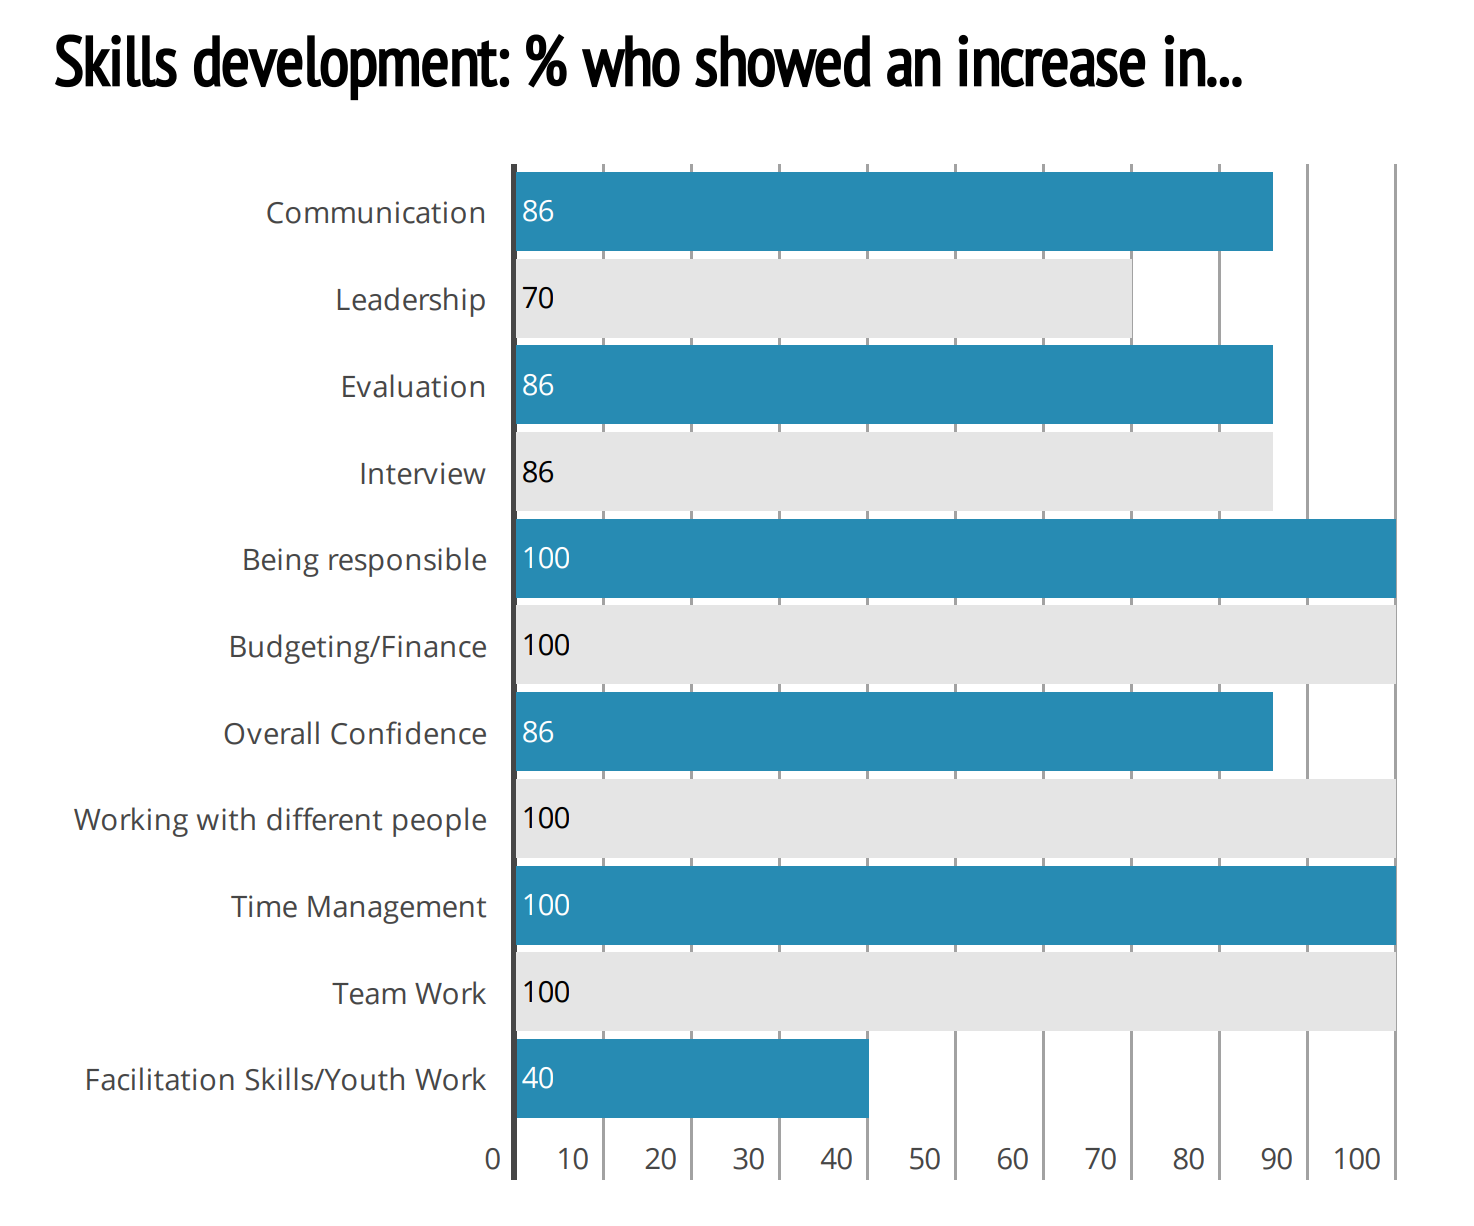 Skills development: % who showed an increase in...